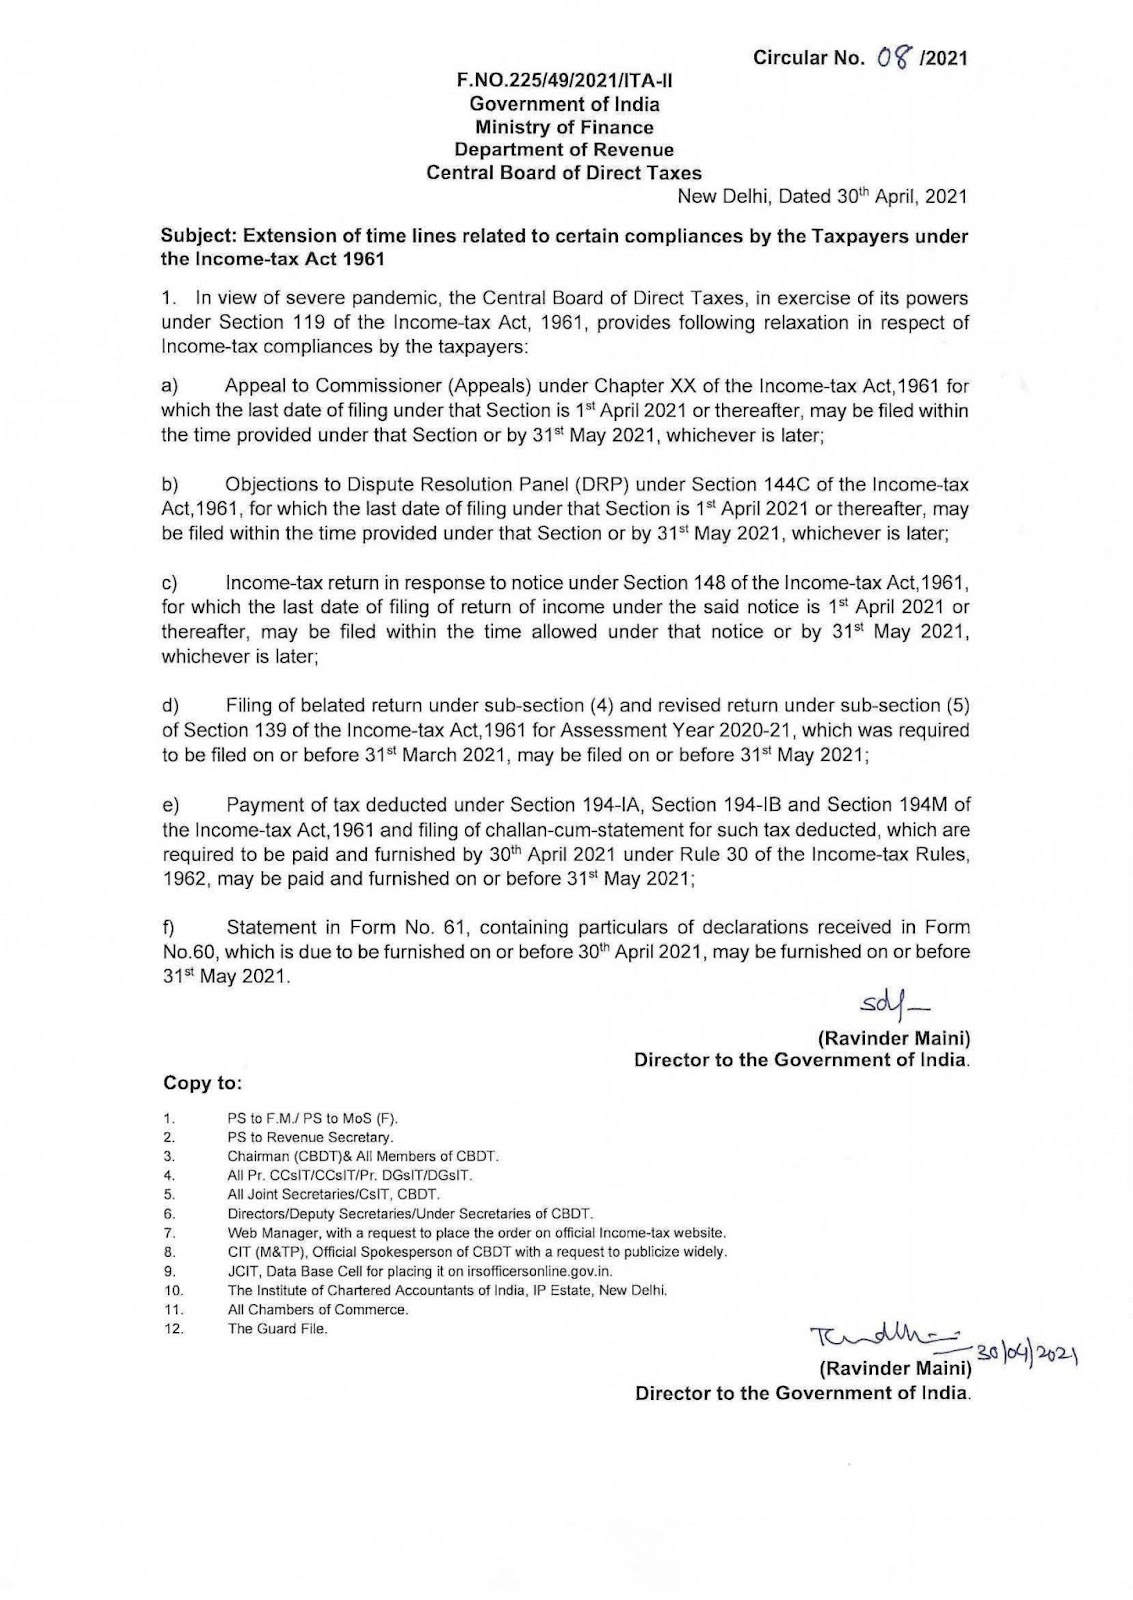 NRI Tax Filing Deadline for FY 19-20 Updated to 31st May 2021